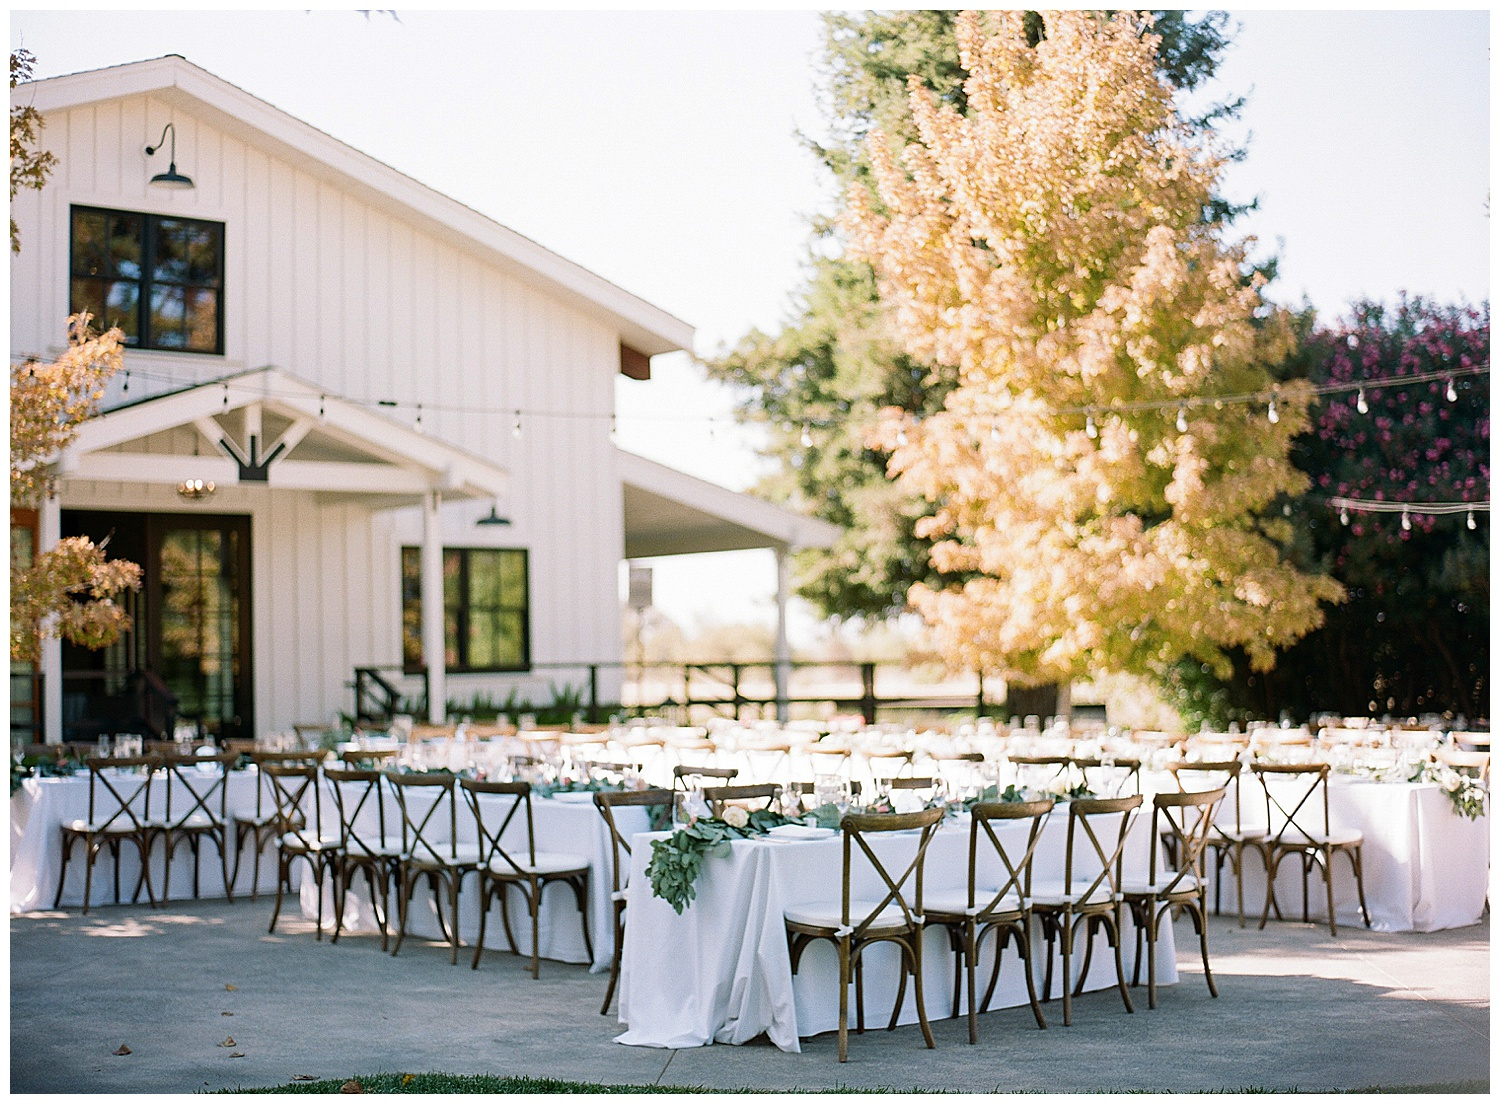 Janine_Licare_Photography_San_Francisco_Wedding_Photographer_Carneros_Tyge_Williams_Sonoma_Napa_0231.jpg